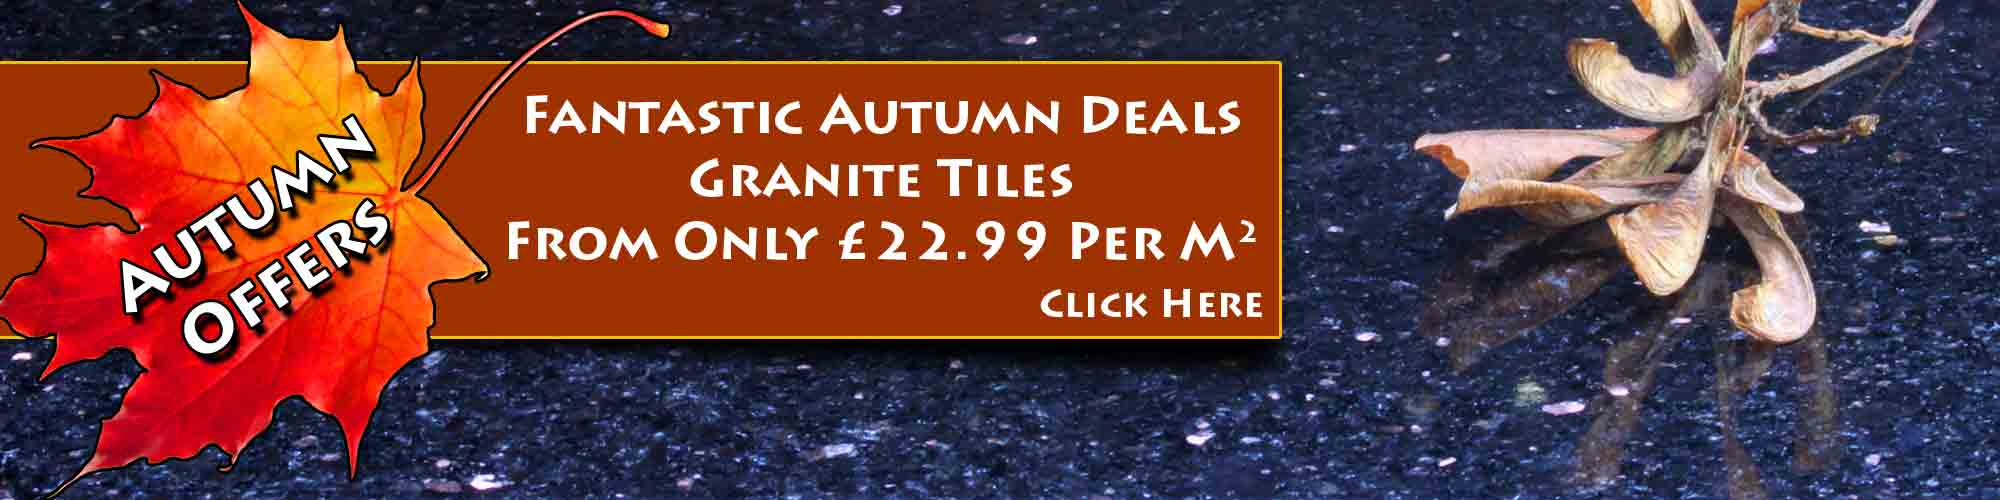 Autumn Deals on Granite Tiles - September Offers